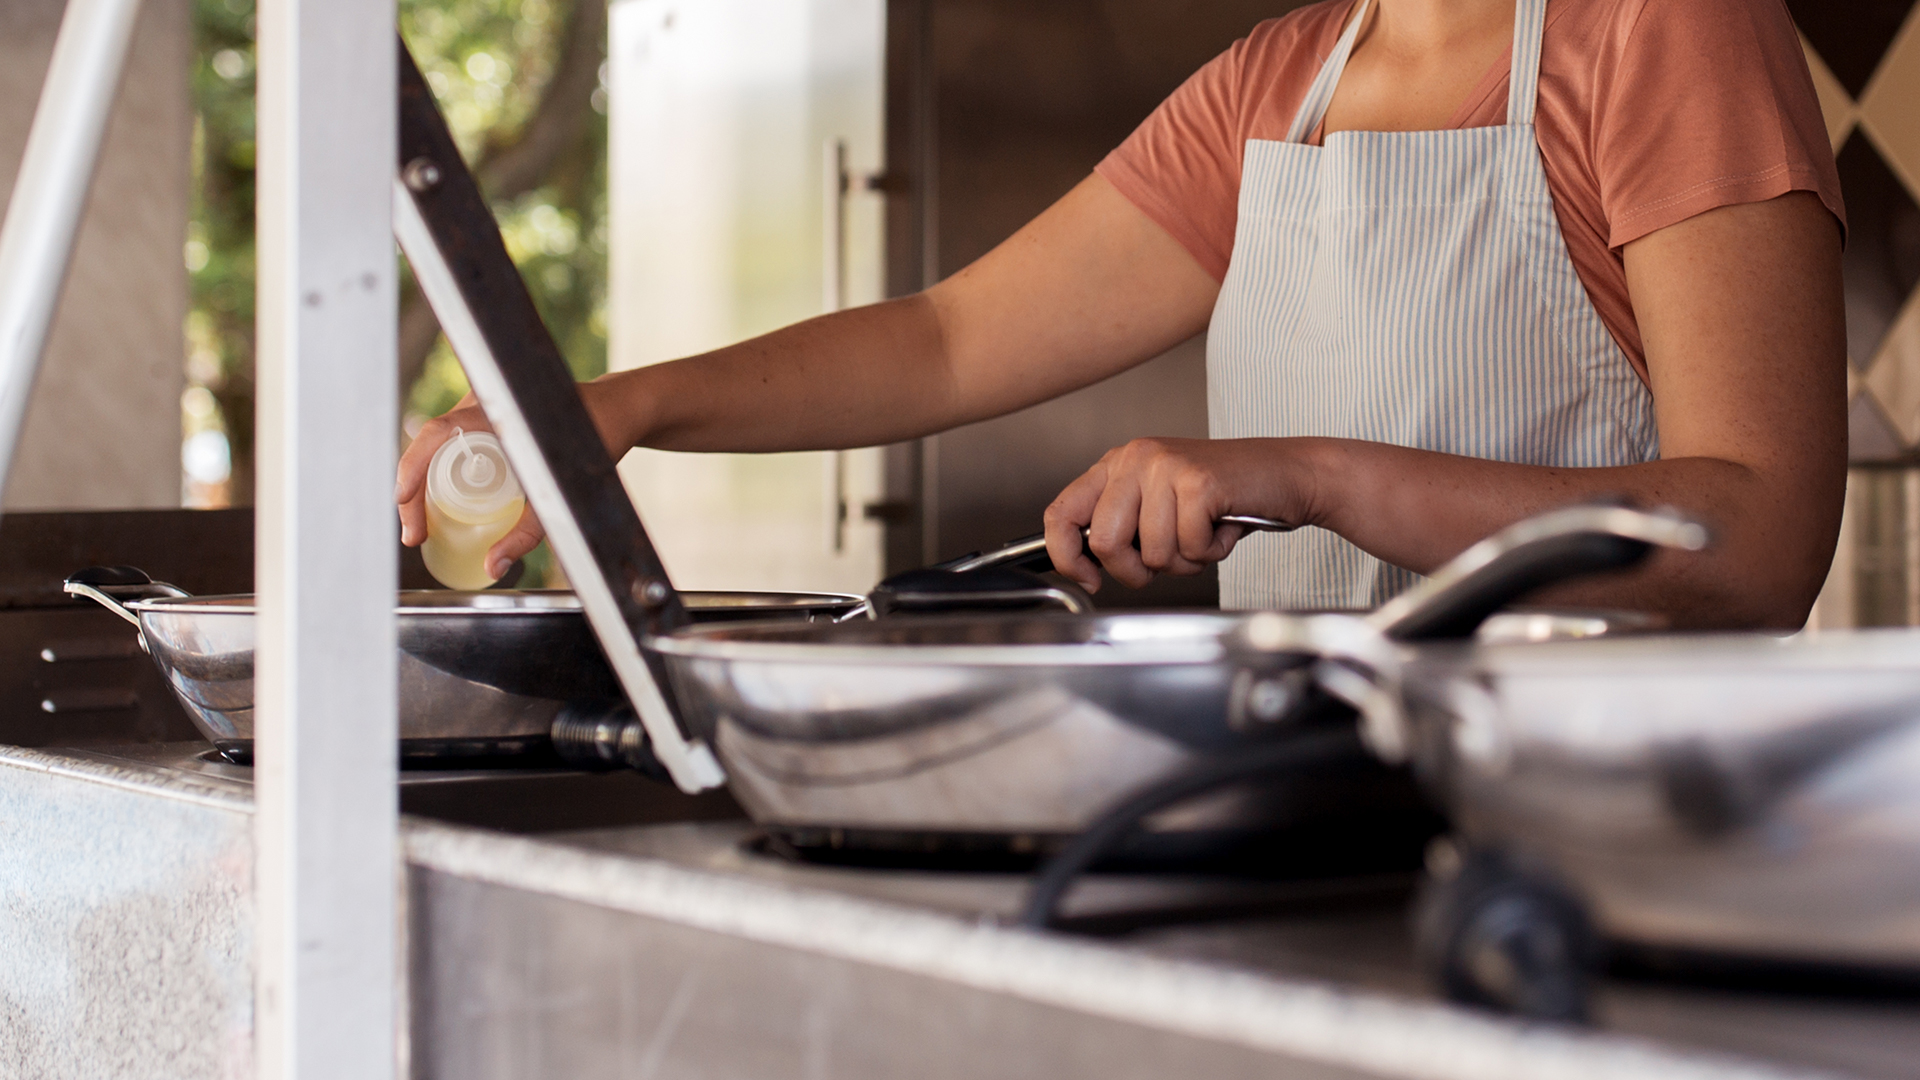 Nova Scotia food truck owner fined $11k for maskless employees